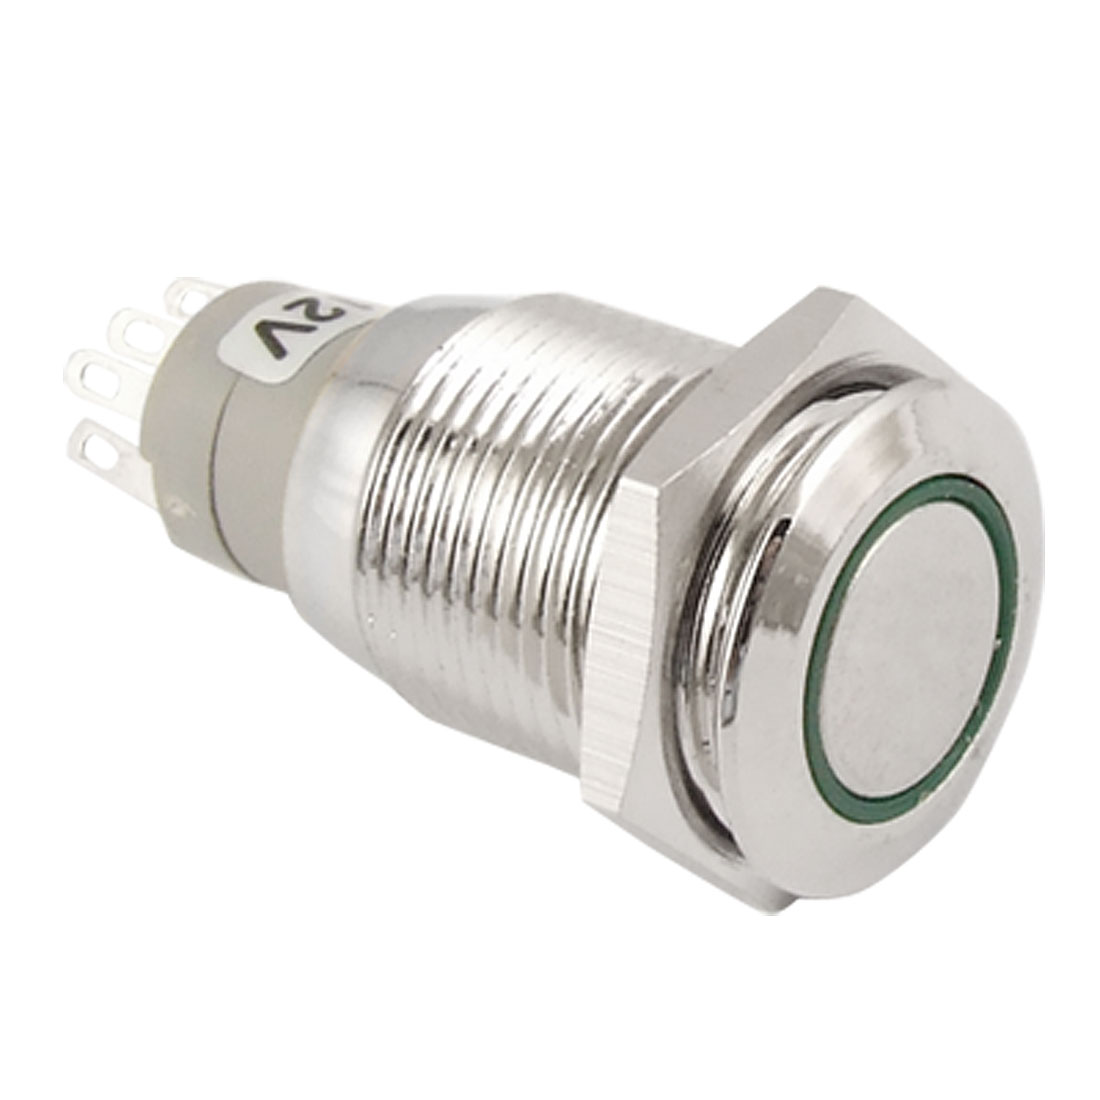 Angel Eye Green Led Light 16mm 12V stainless Steel Momentary Pushbutton Switch